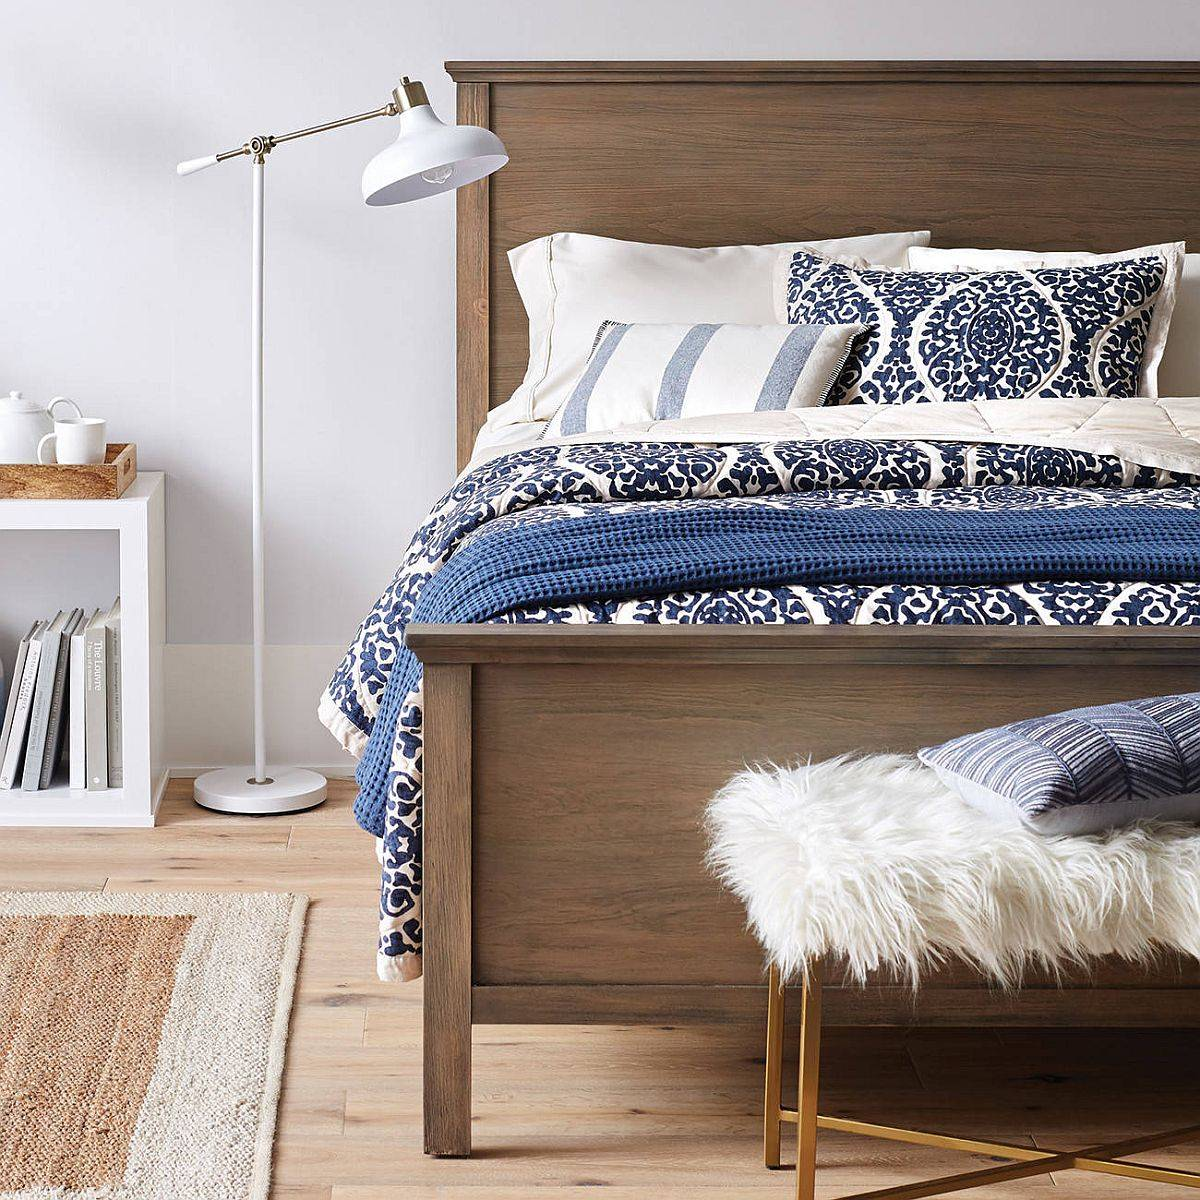 Bedding-in-beachy-blue-is-perfect-for-the-summer-inspired-bedroom-55054